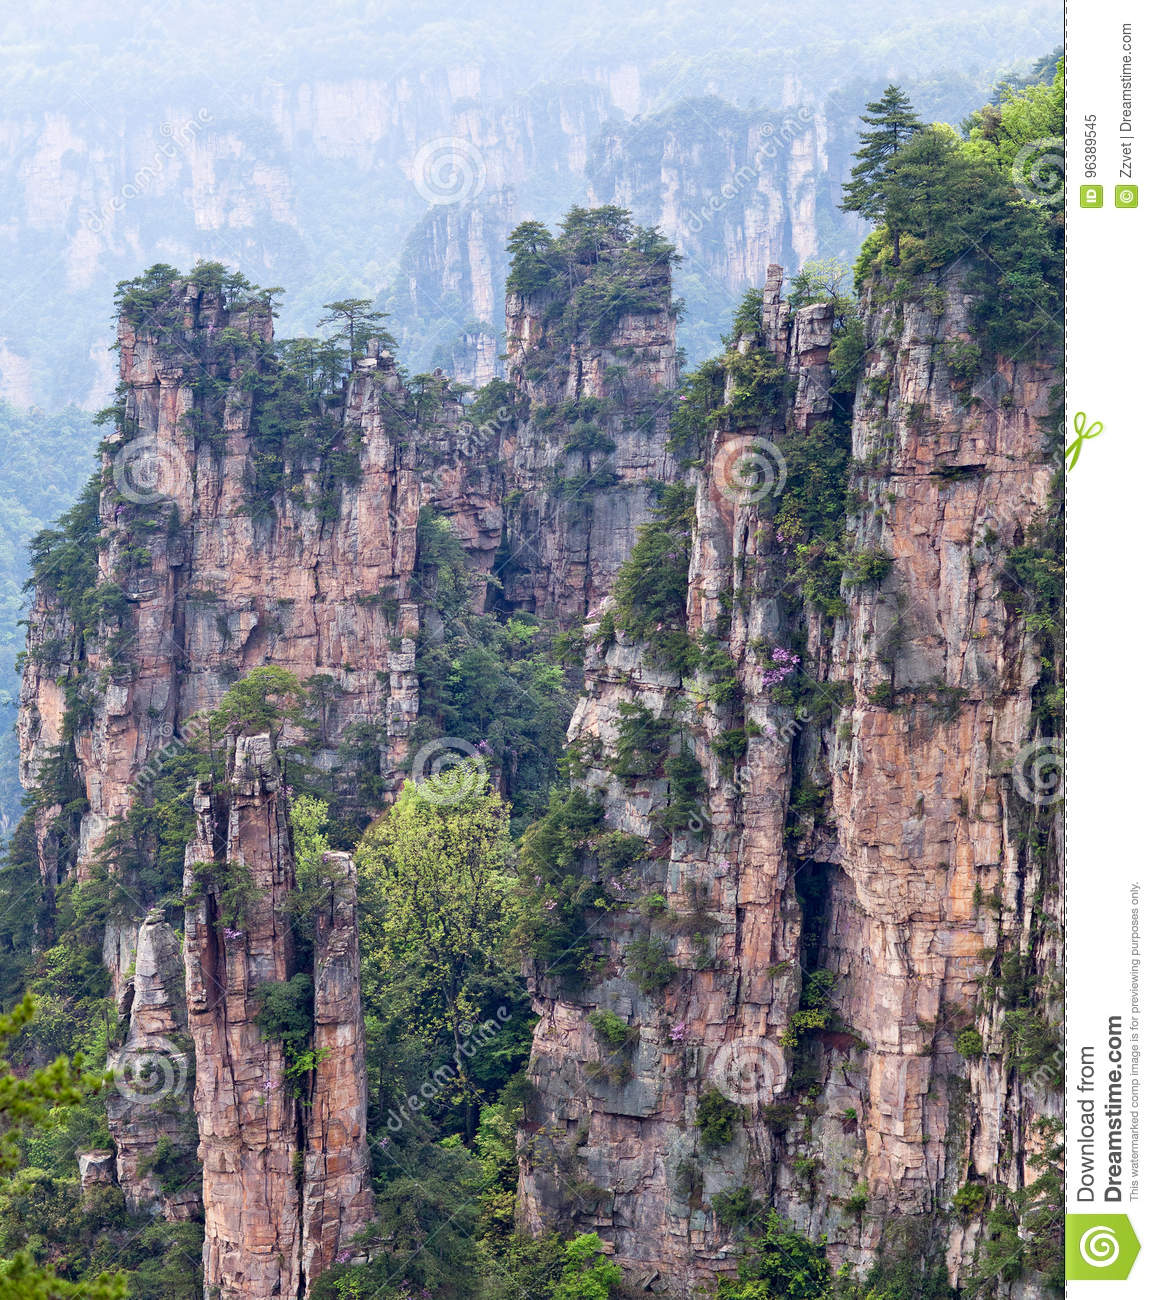 Avatar Drijvende Bergen in Zhangjiajie Nationaal Forest Park, China